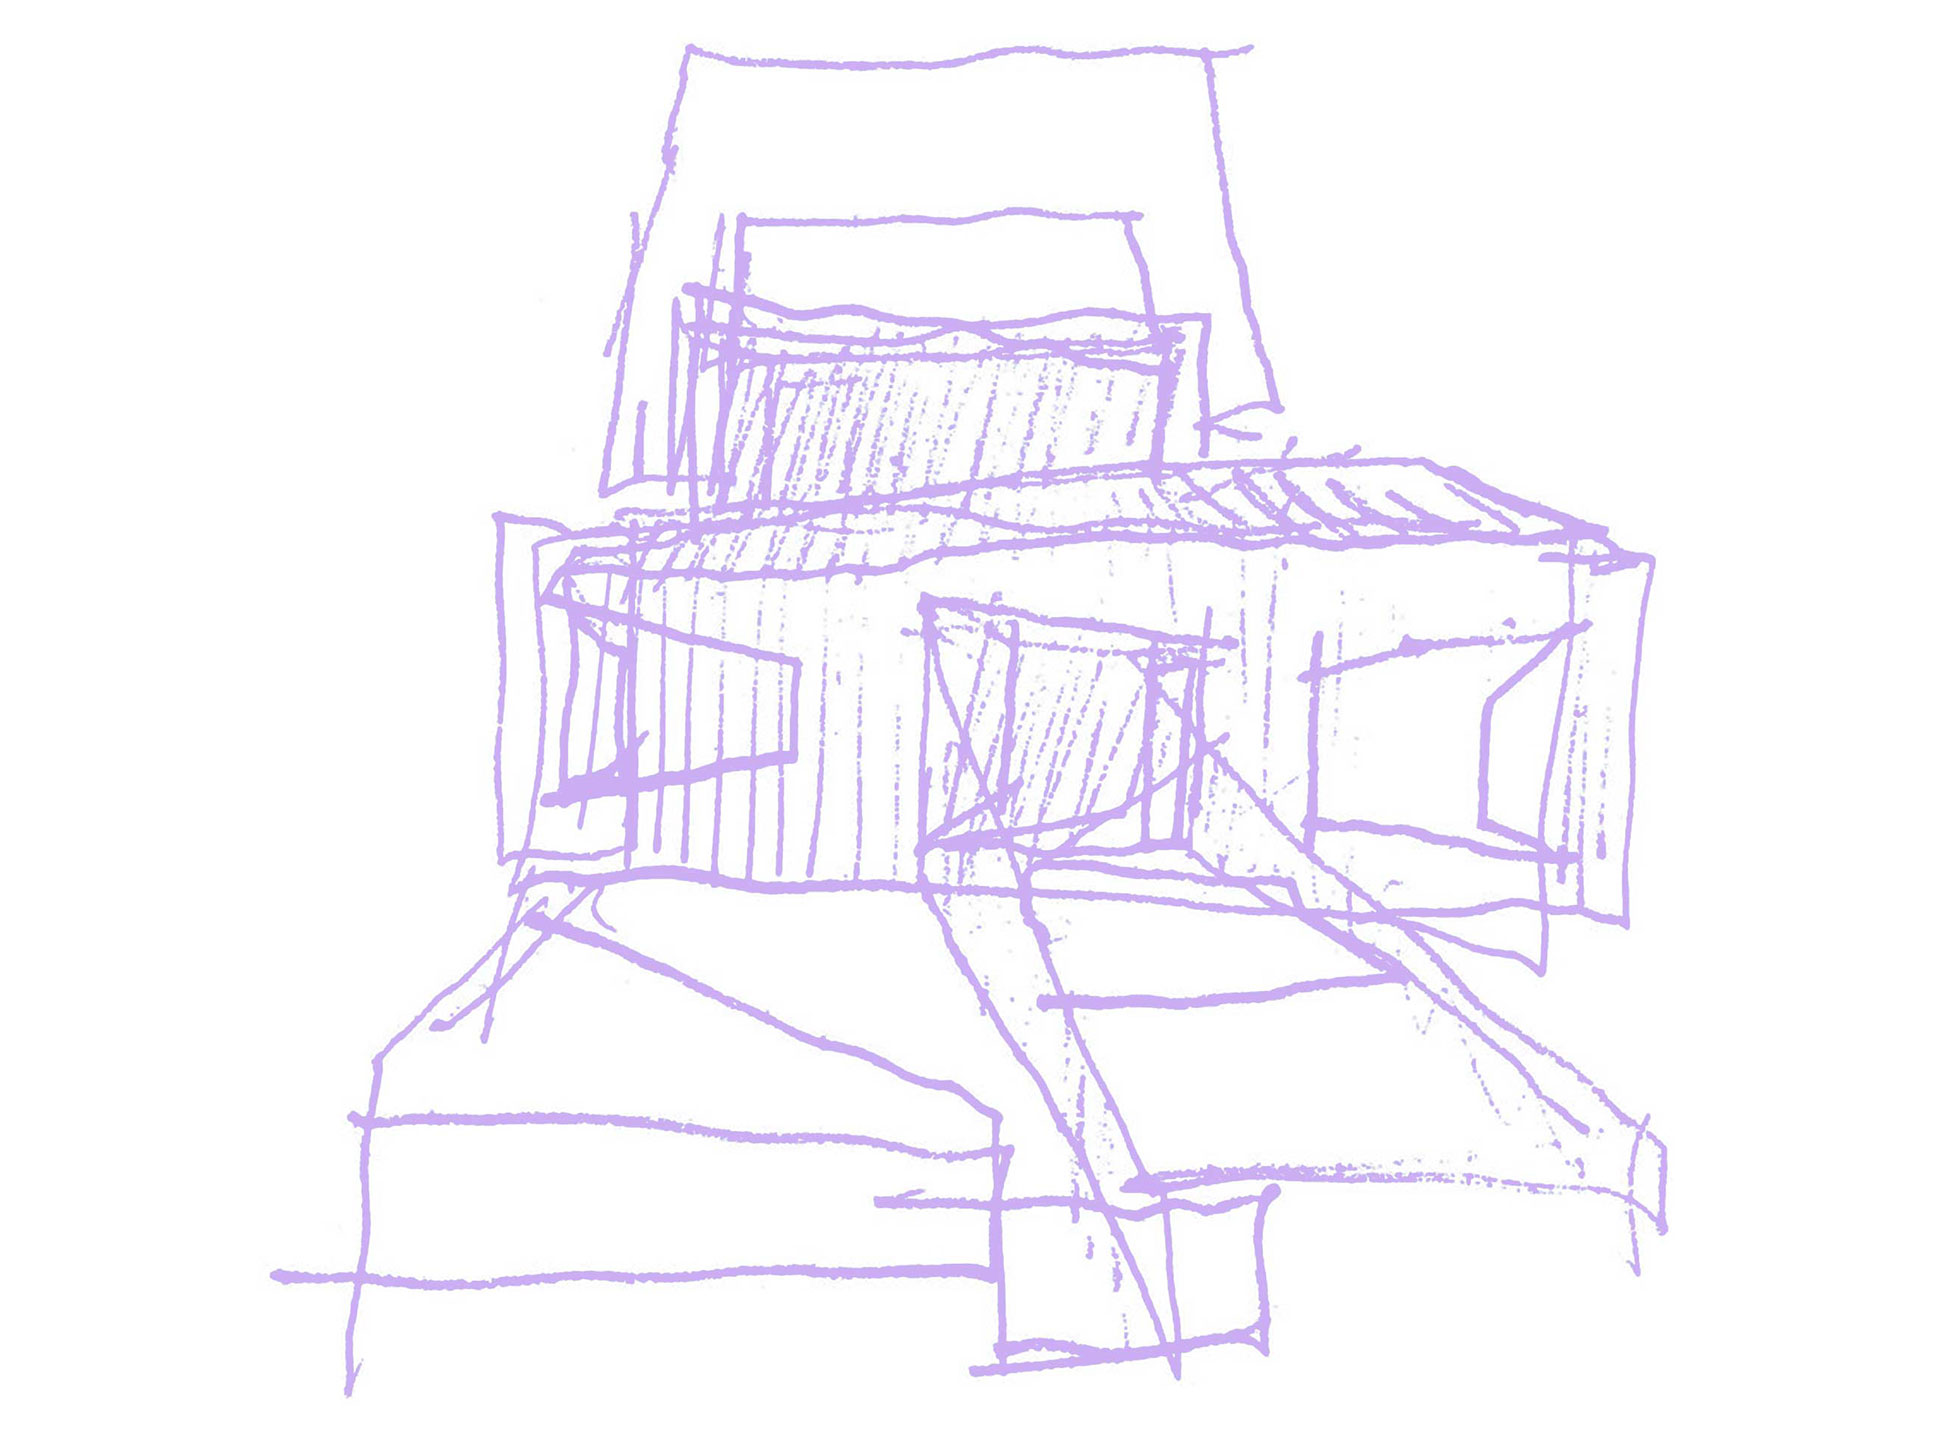 boceto-frank-gehry